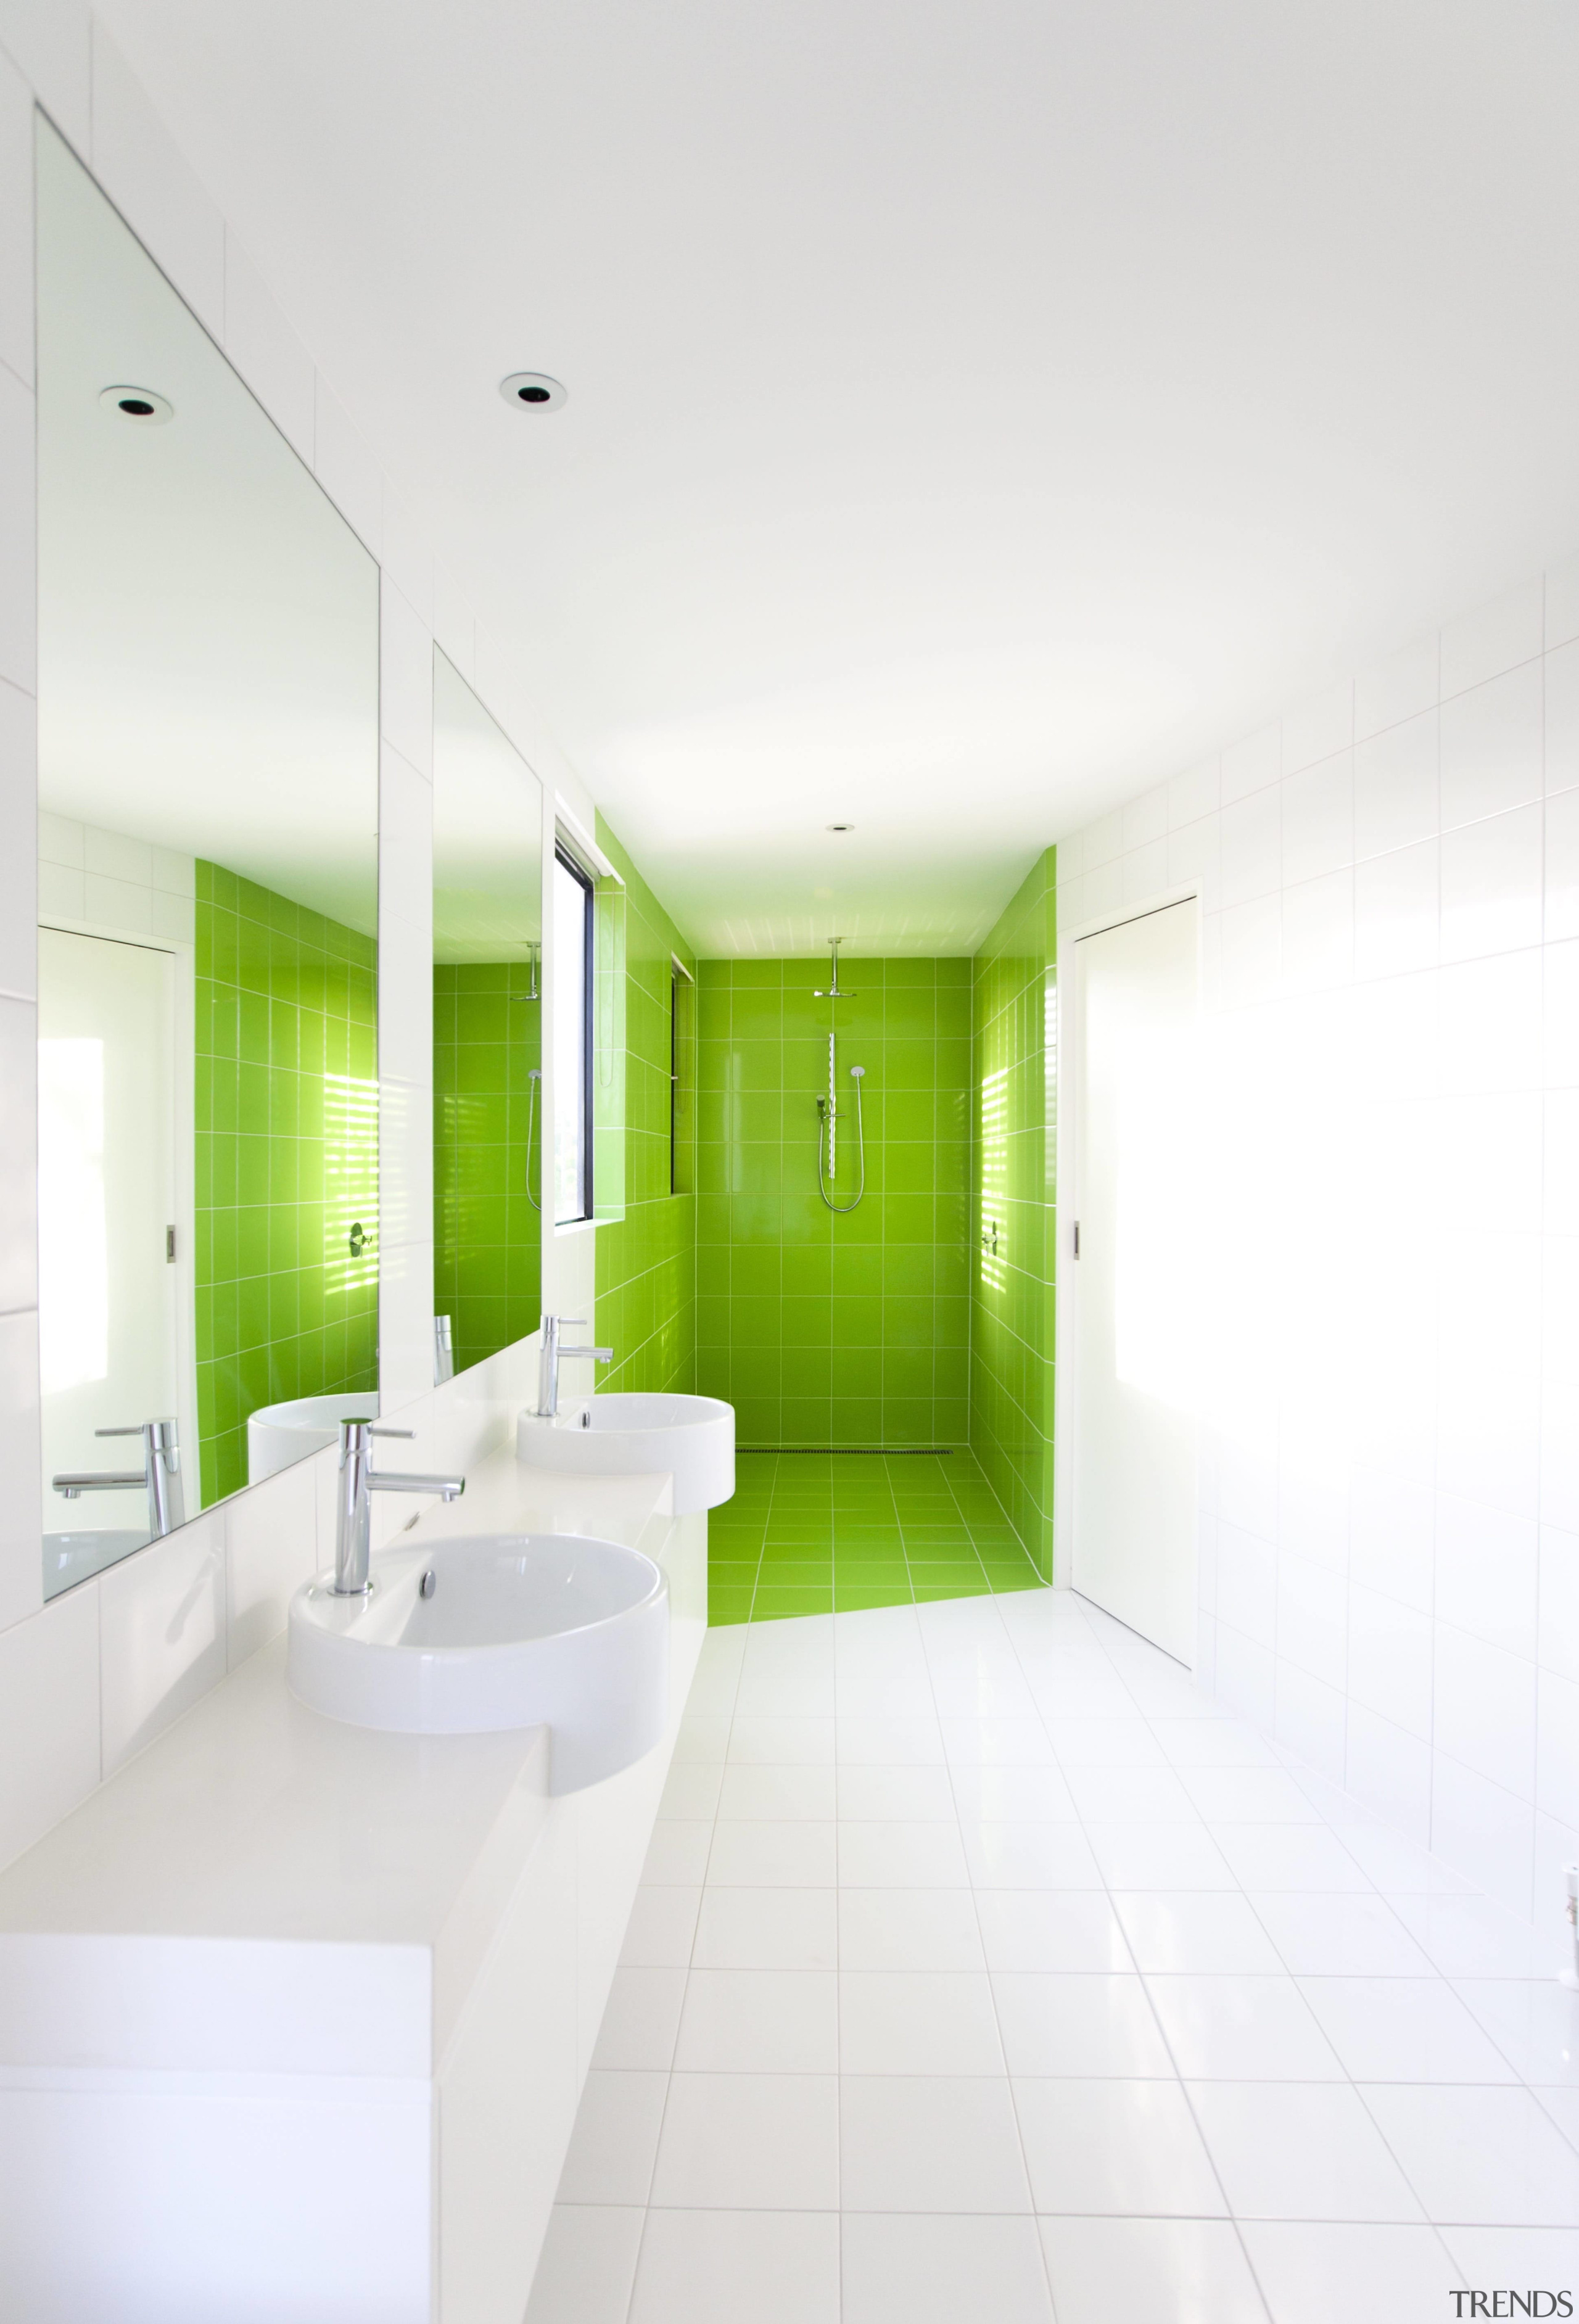 Lime green tiles book end this bathroom - architecture, bathroom, ceiling, daylighting, floor, home, house, interior design, product design, real estate, room, white